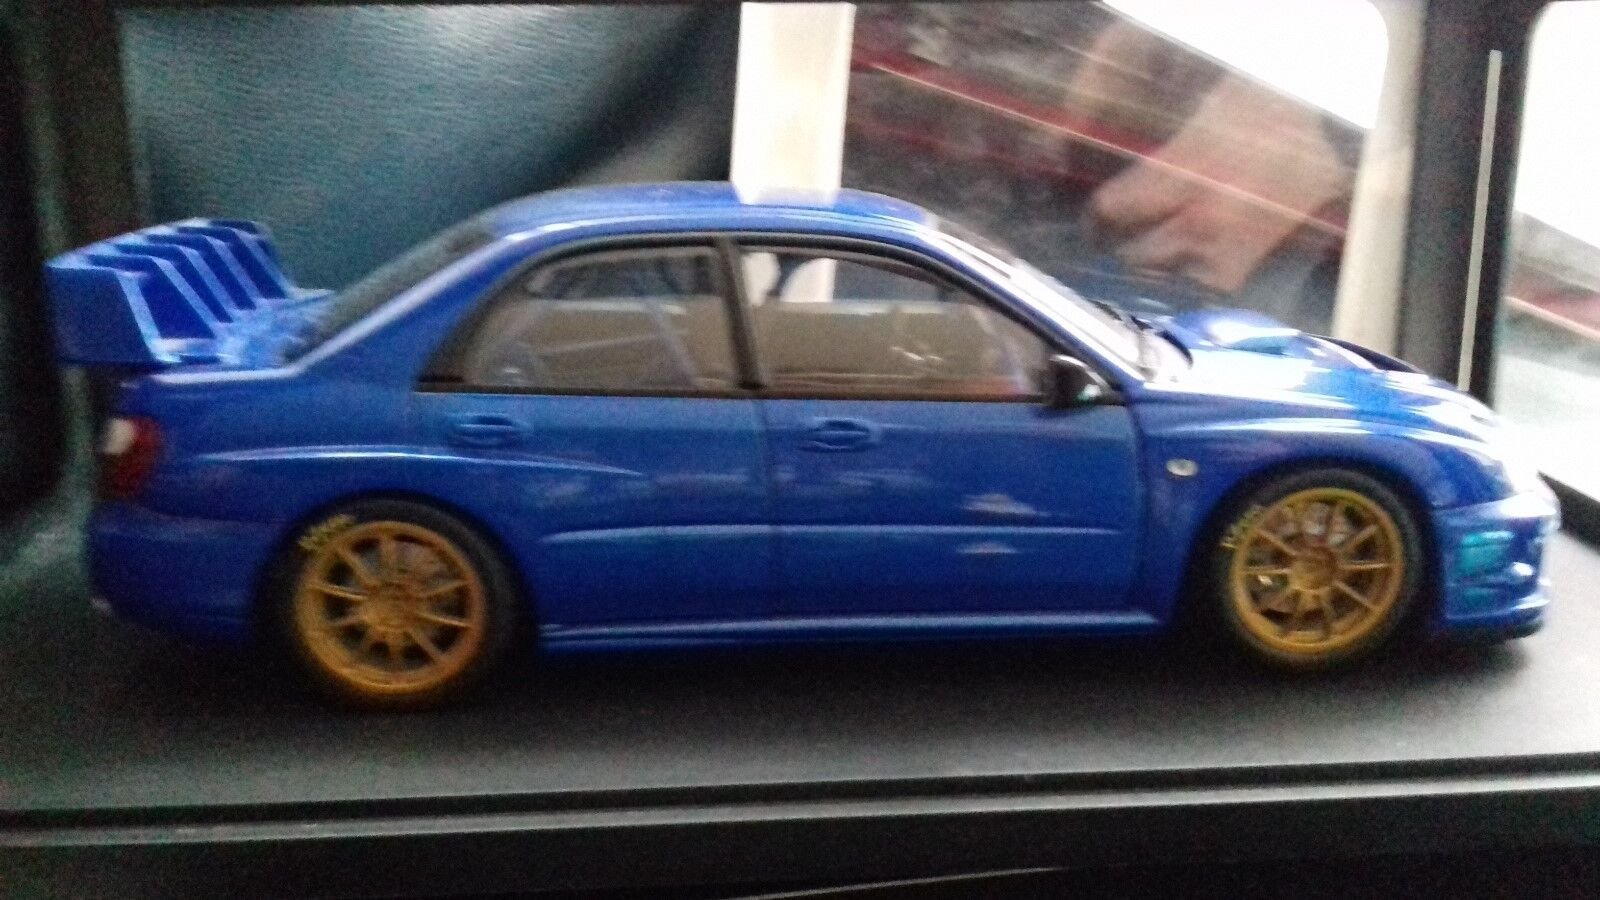 AUTO ART RACING DIVISION SUBARU IMPREZA WRC SUPERB MINT AND BOXED RARE ITEM